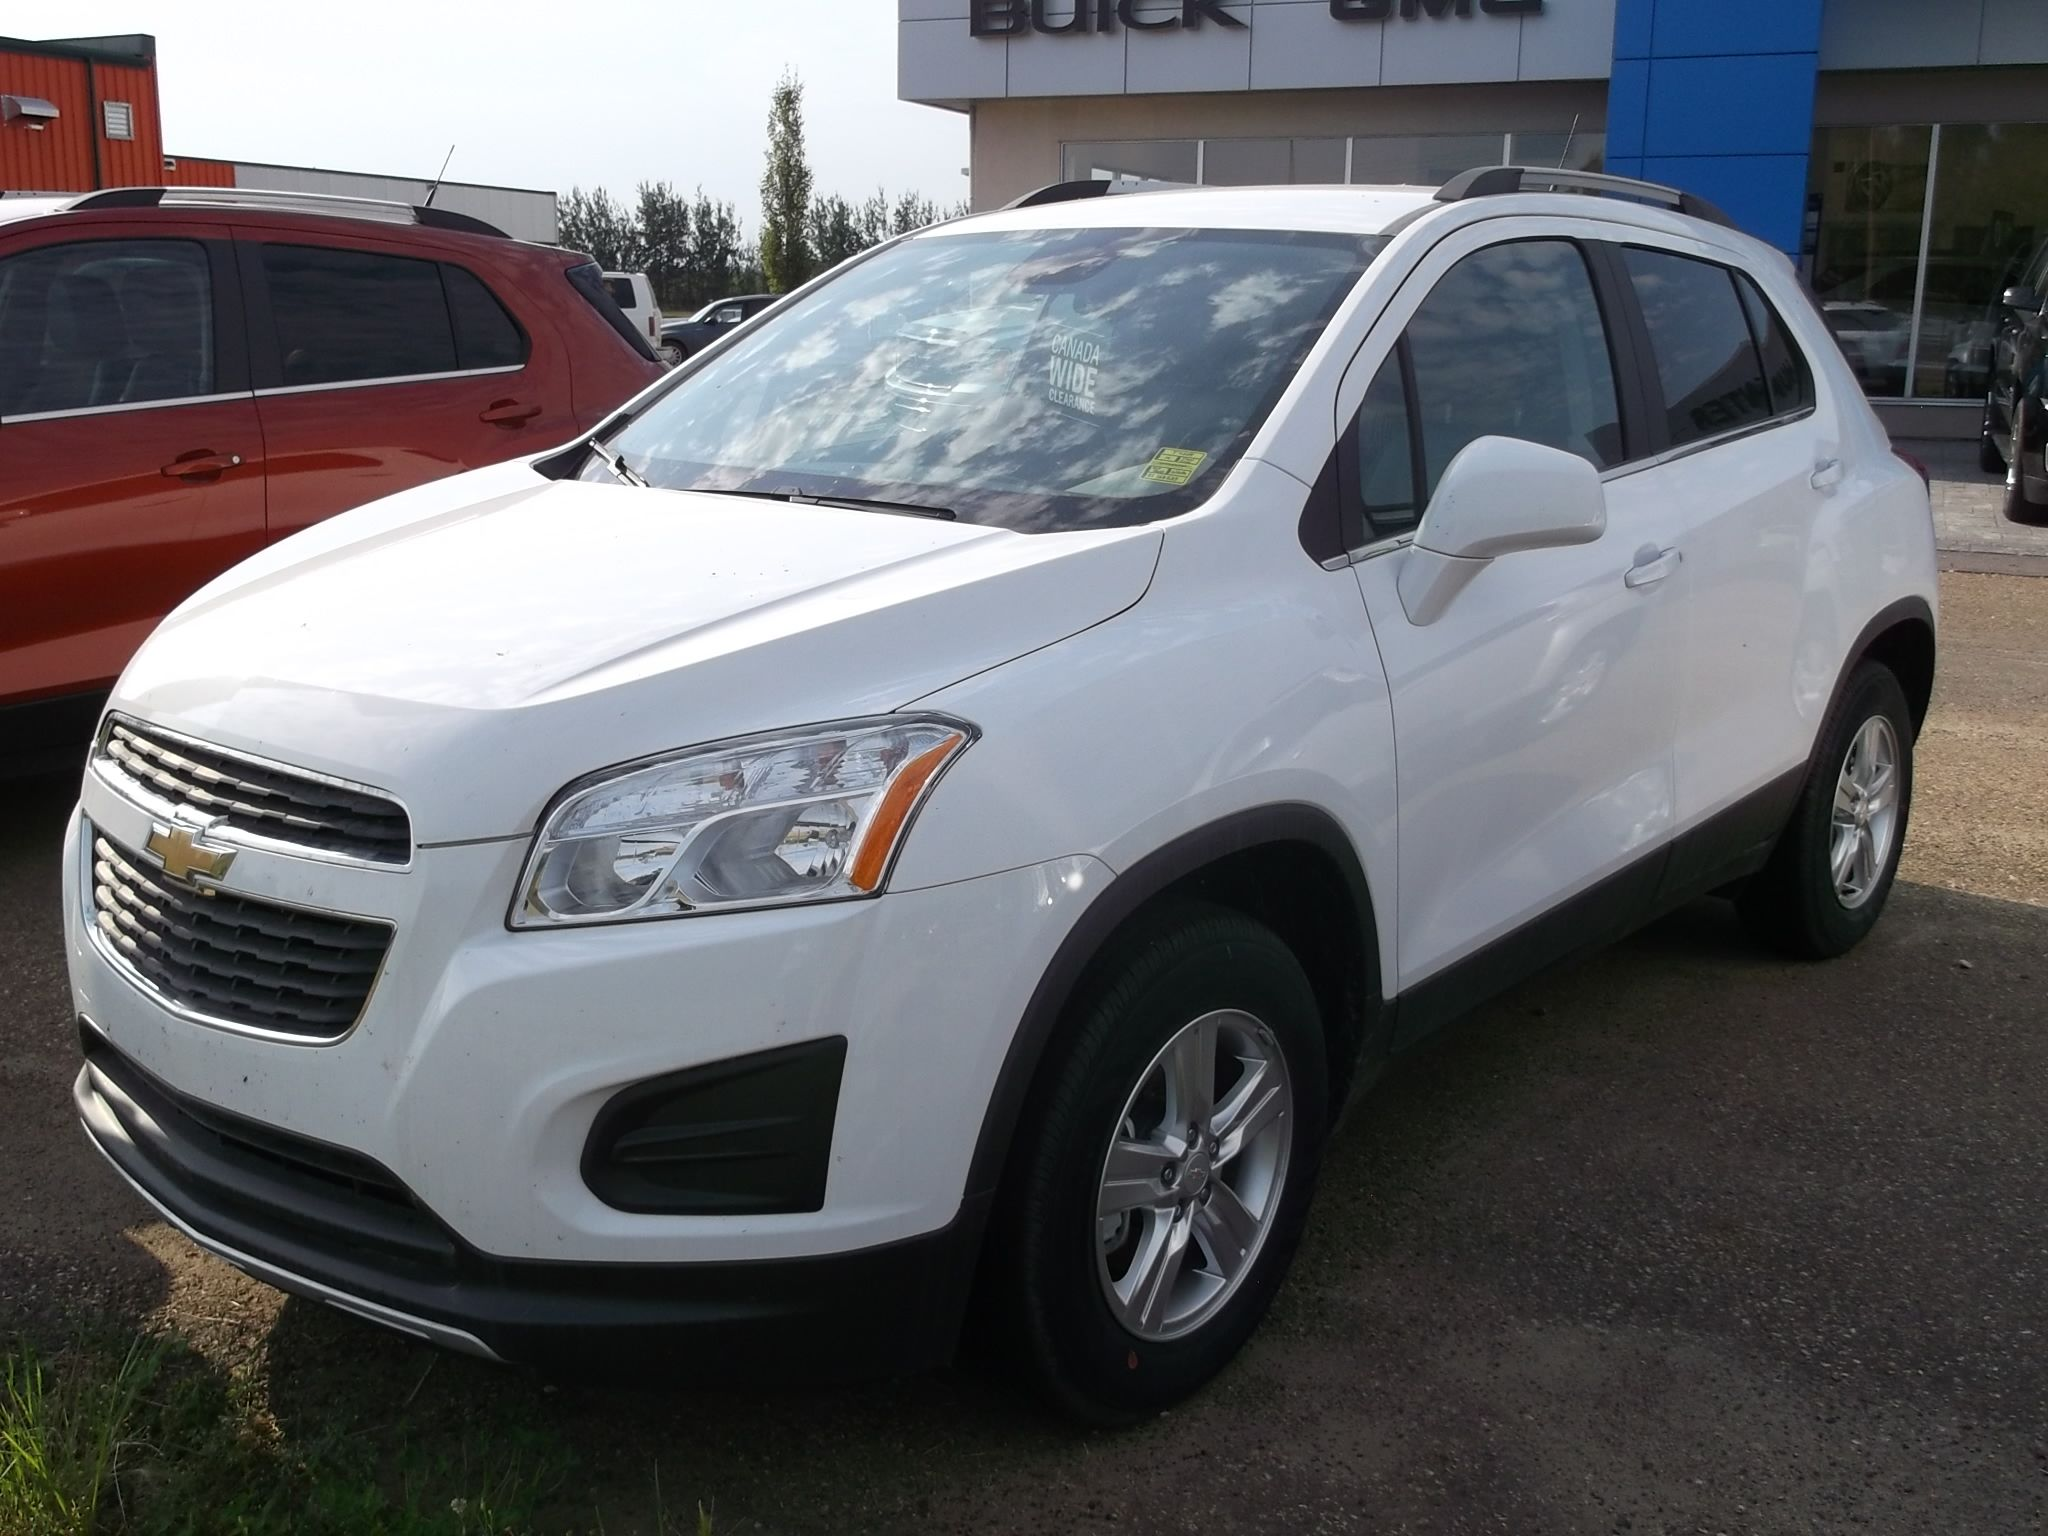 2014 Chevy Trax 2014 Chevy Chevy Trax